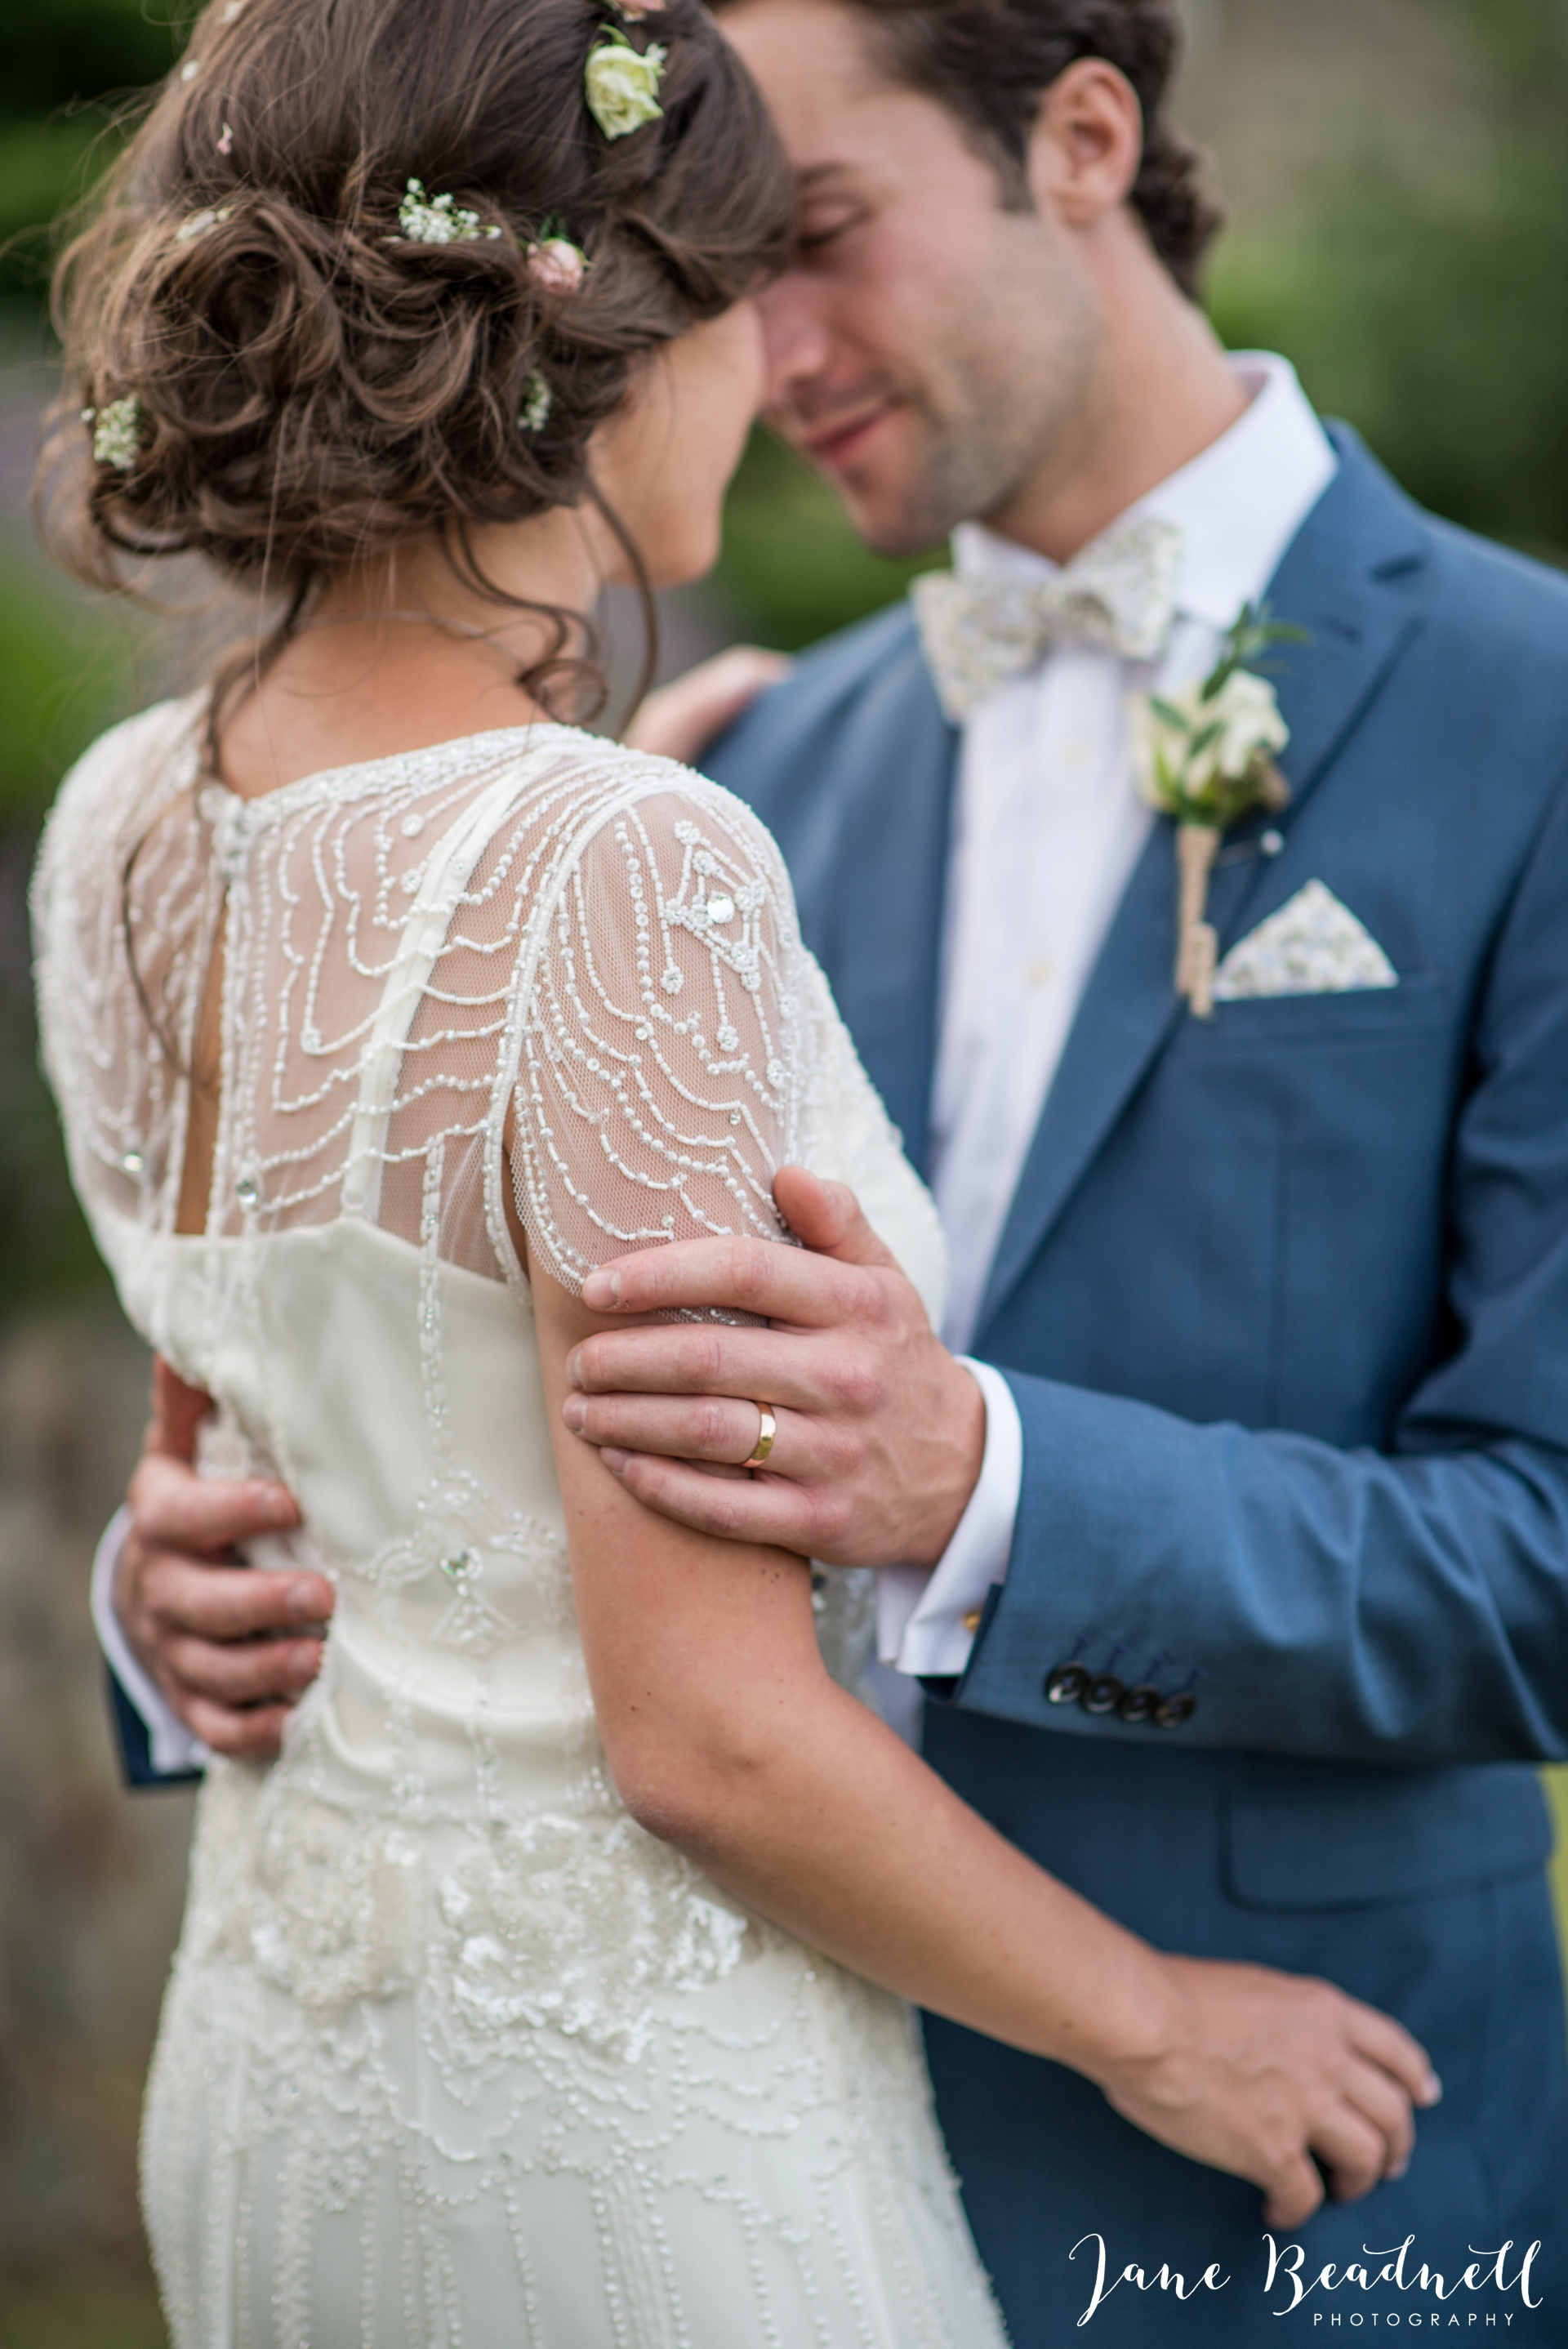 Jane Beadnell fine art wedding photographer Leeds_0142